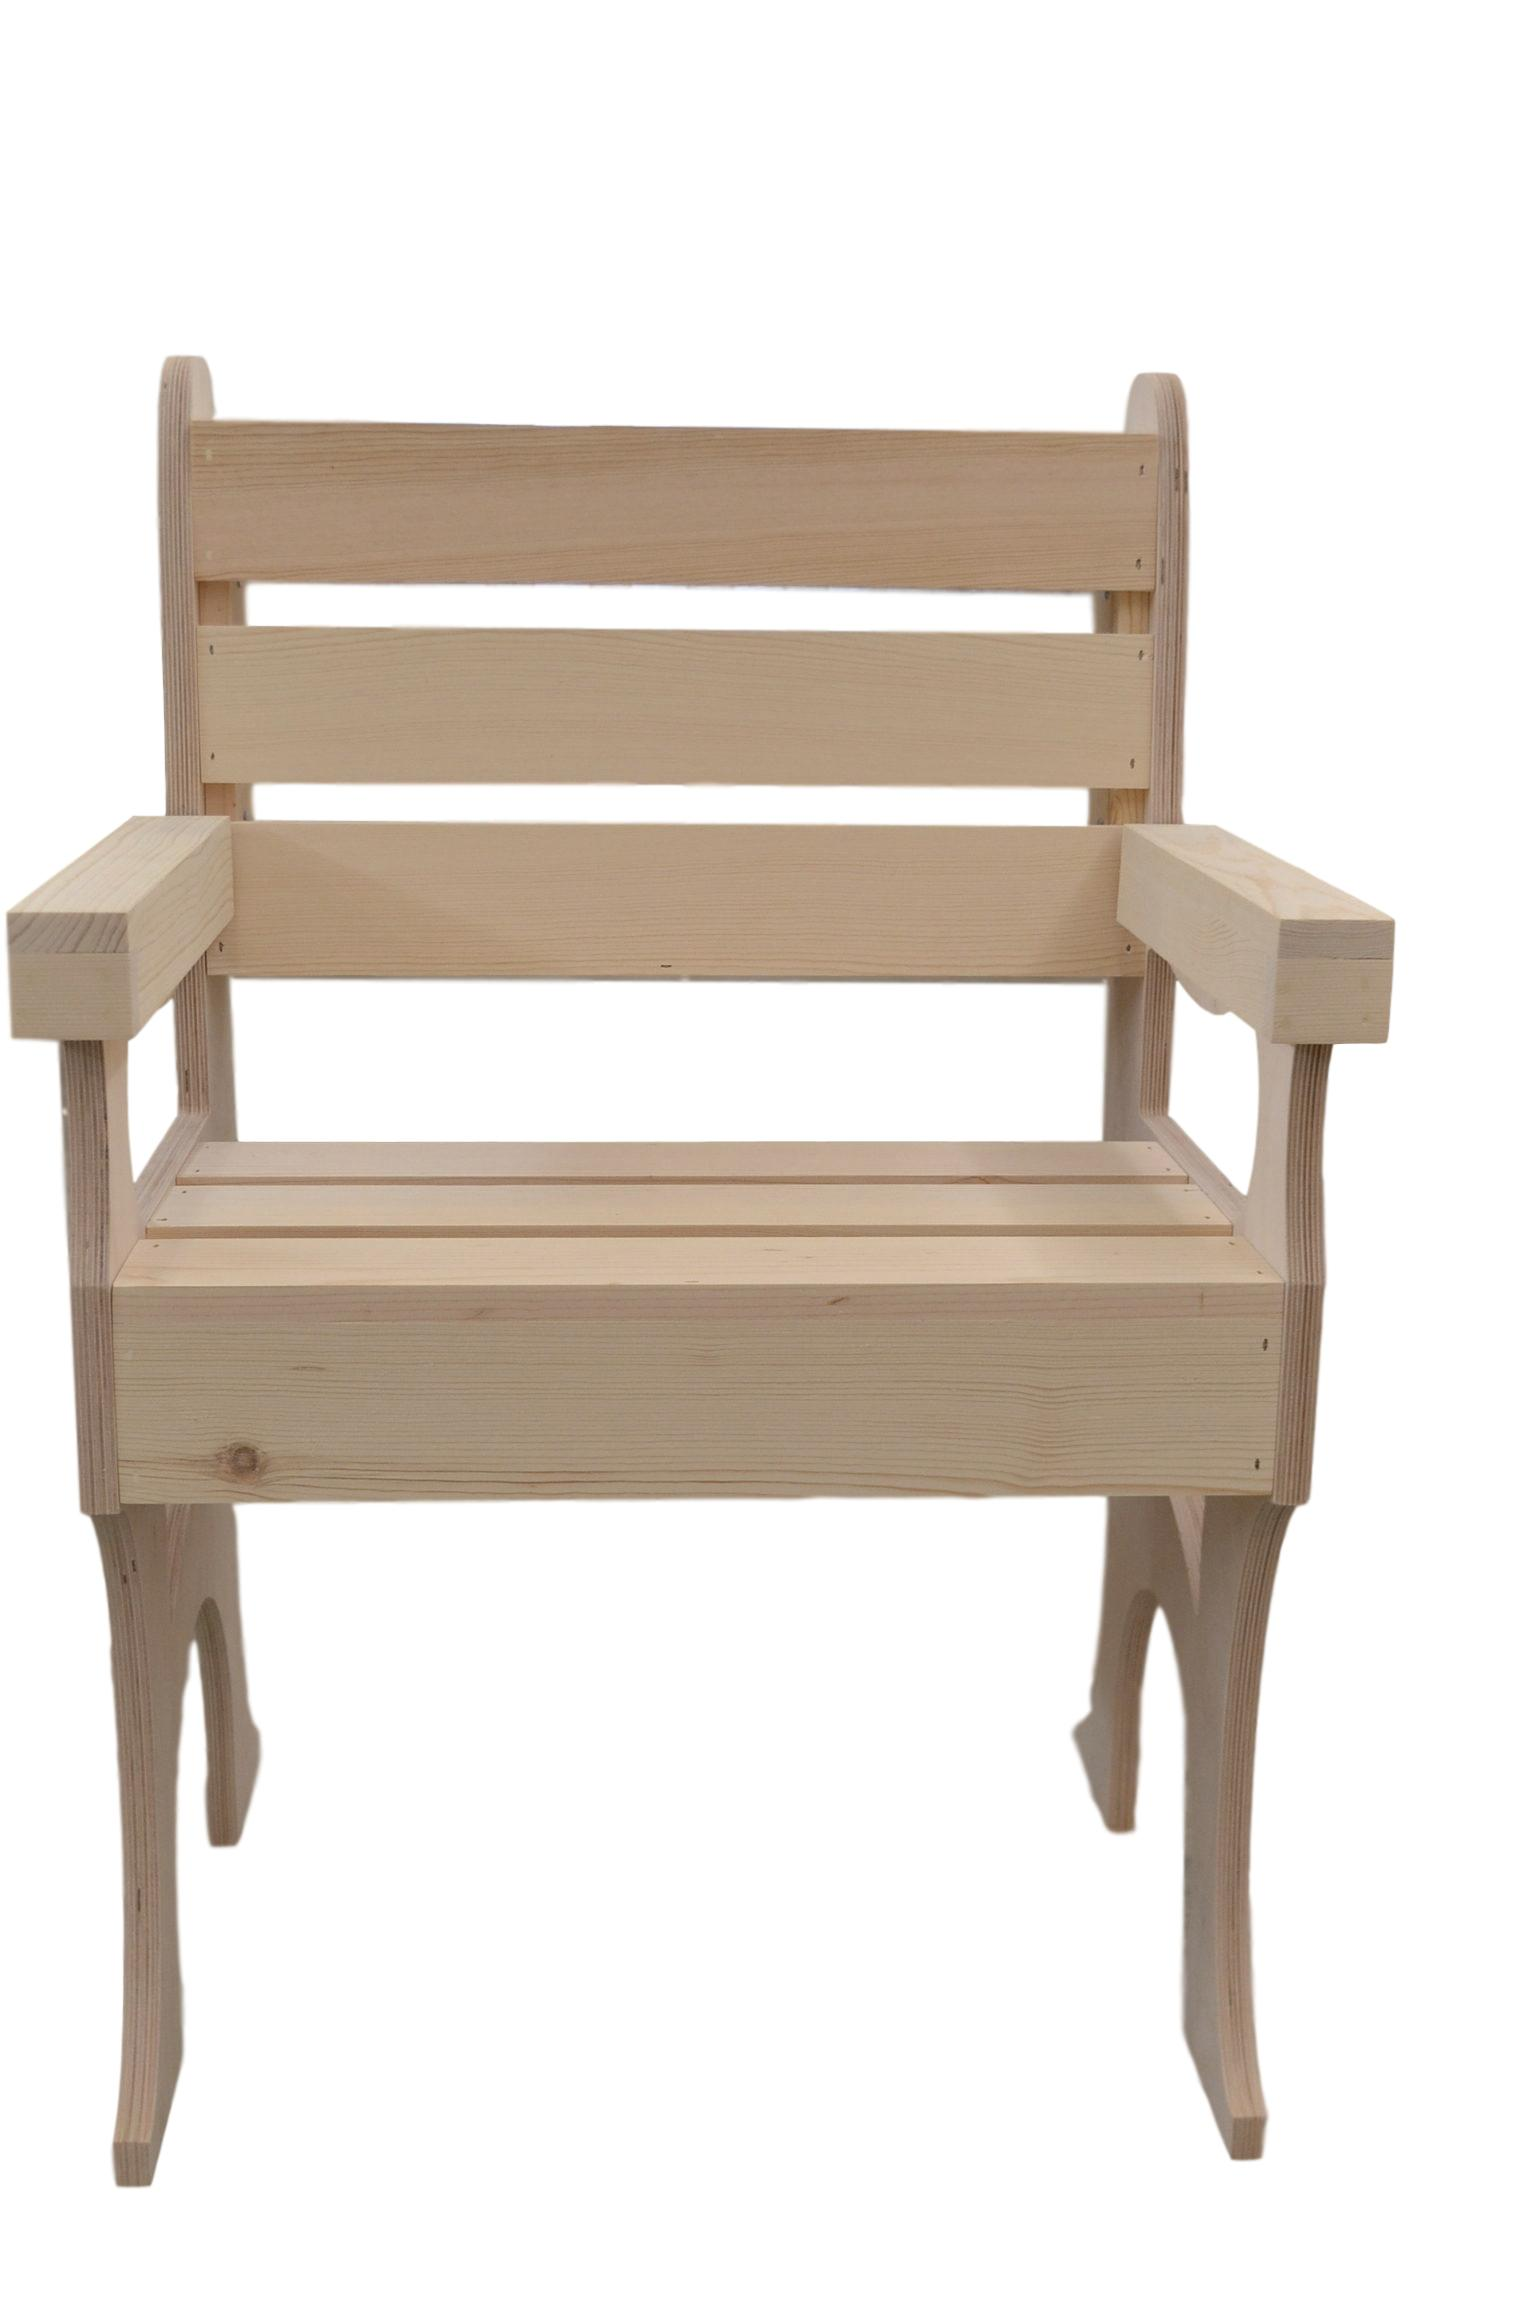 Phenomenal Wooden Outside Deck Chair Pdpeps Interior Chair Design Pdpepsorg